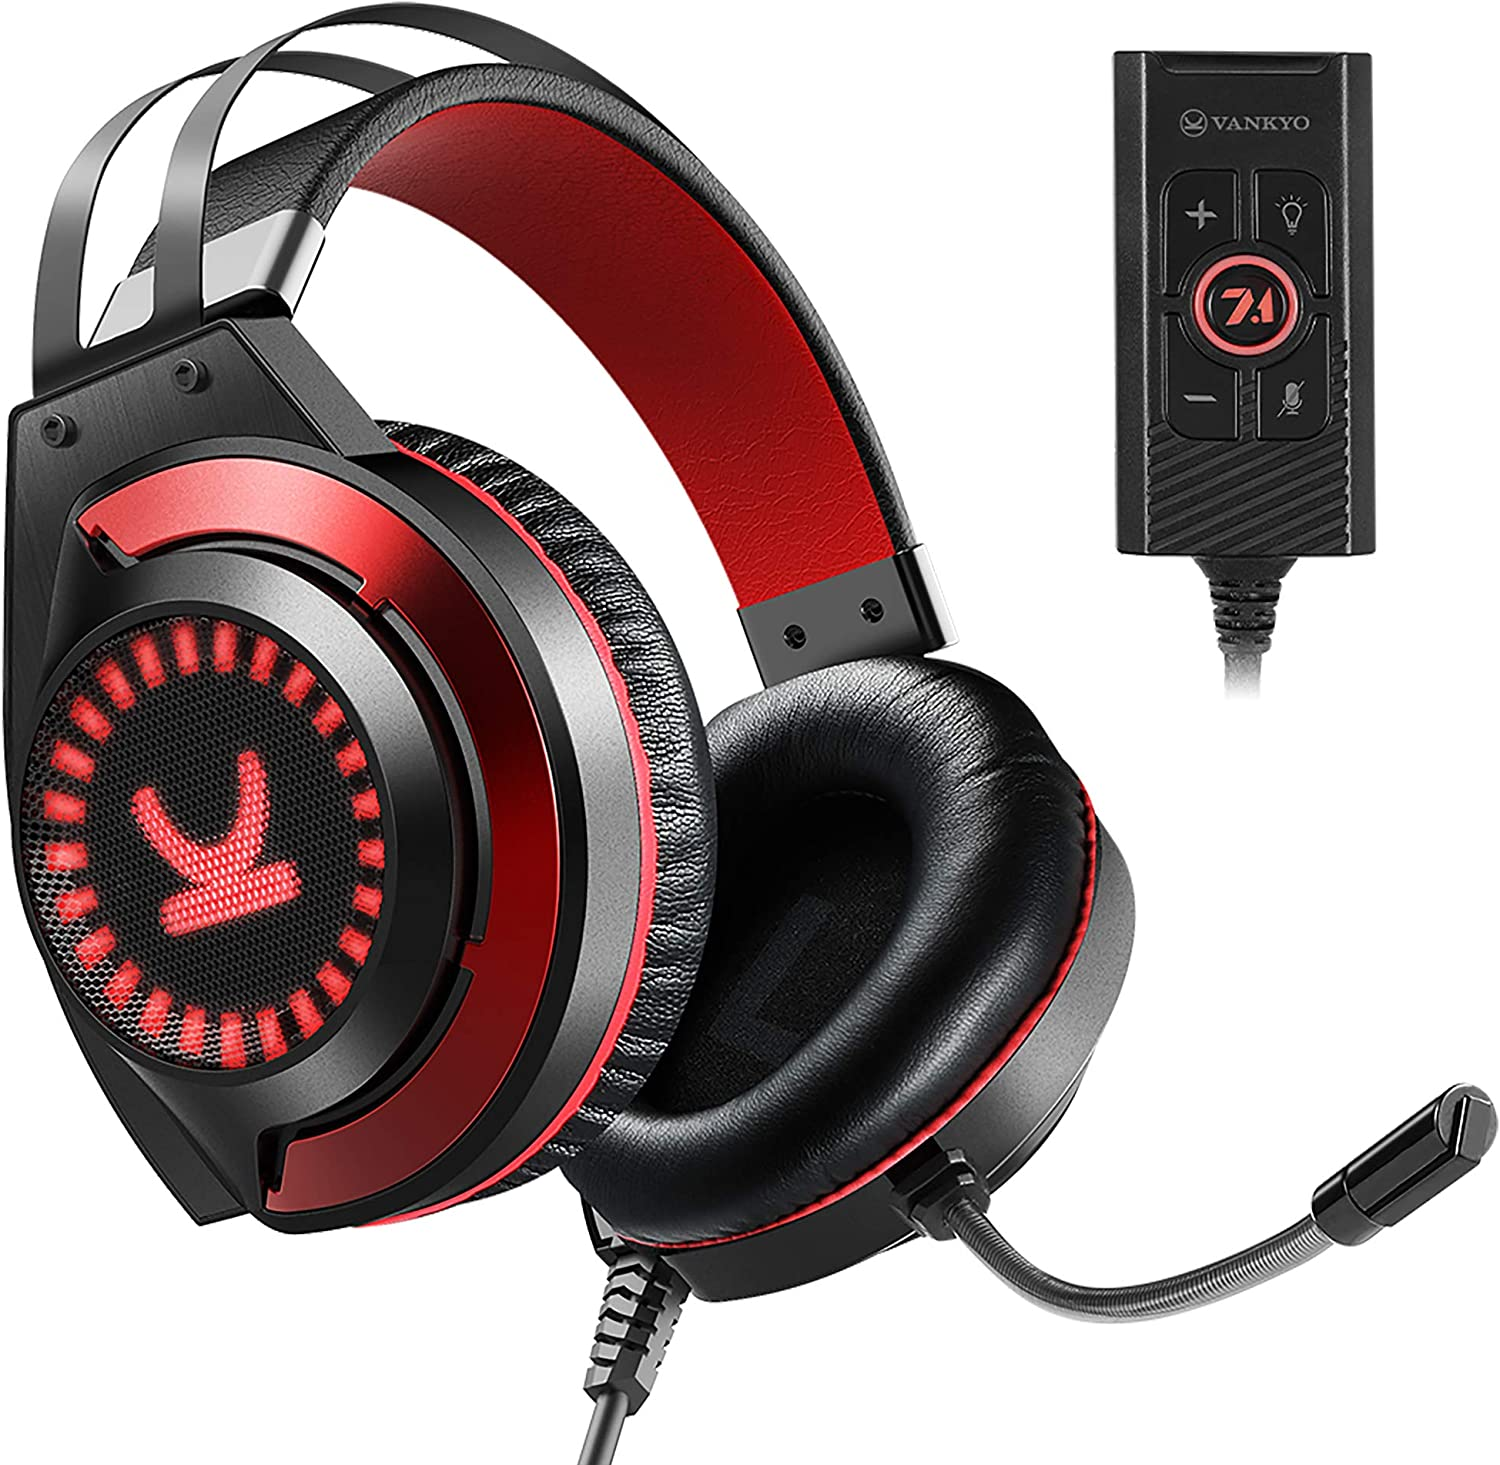 VANKYO Gaming Headset CM7000 with Authentic 7.1 Surround Sound Stereo PS4 Xbox One Headset, Gaming Headphones with Noise Canceling Mic & Memory Foam Ear Pads for PC, PS4, Xbox One, Nintendo Switch